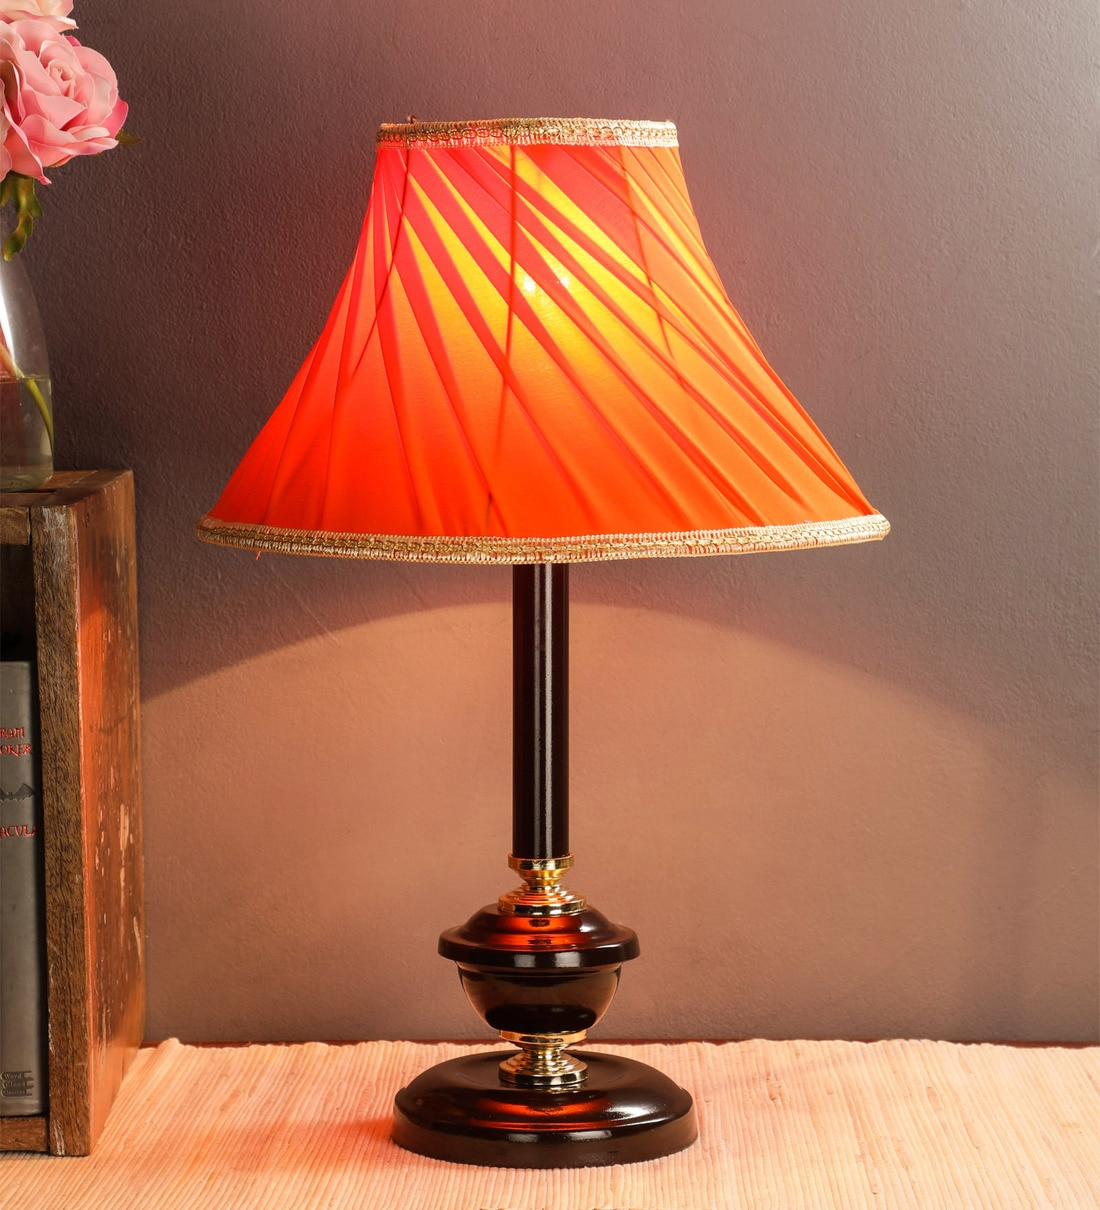 Buy Orange Fabric Shade Table Lamp With Brown Base By Foziq Online Modern And Contemporary Table Lamps Table Lamps Lamps Lighting Pepperfry Product